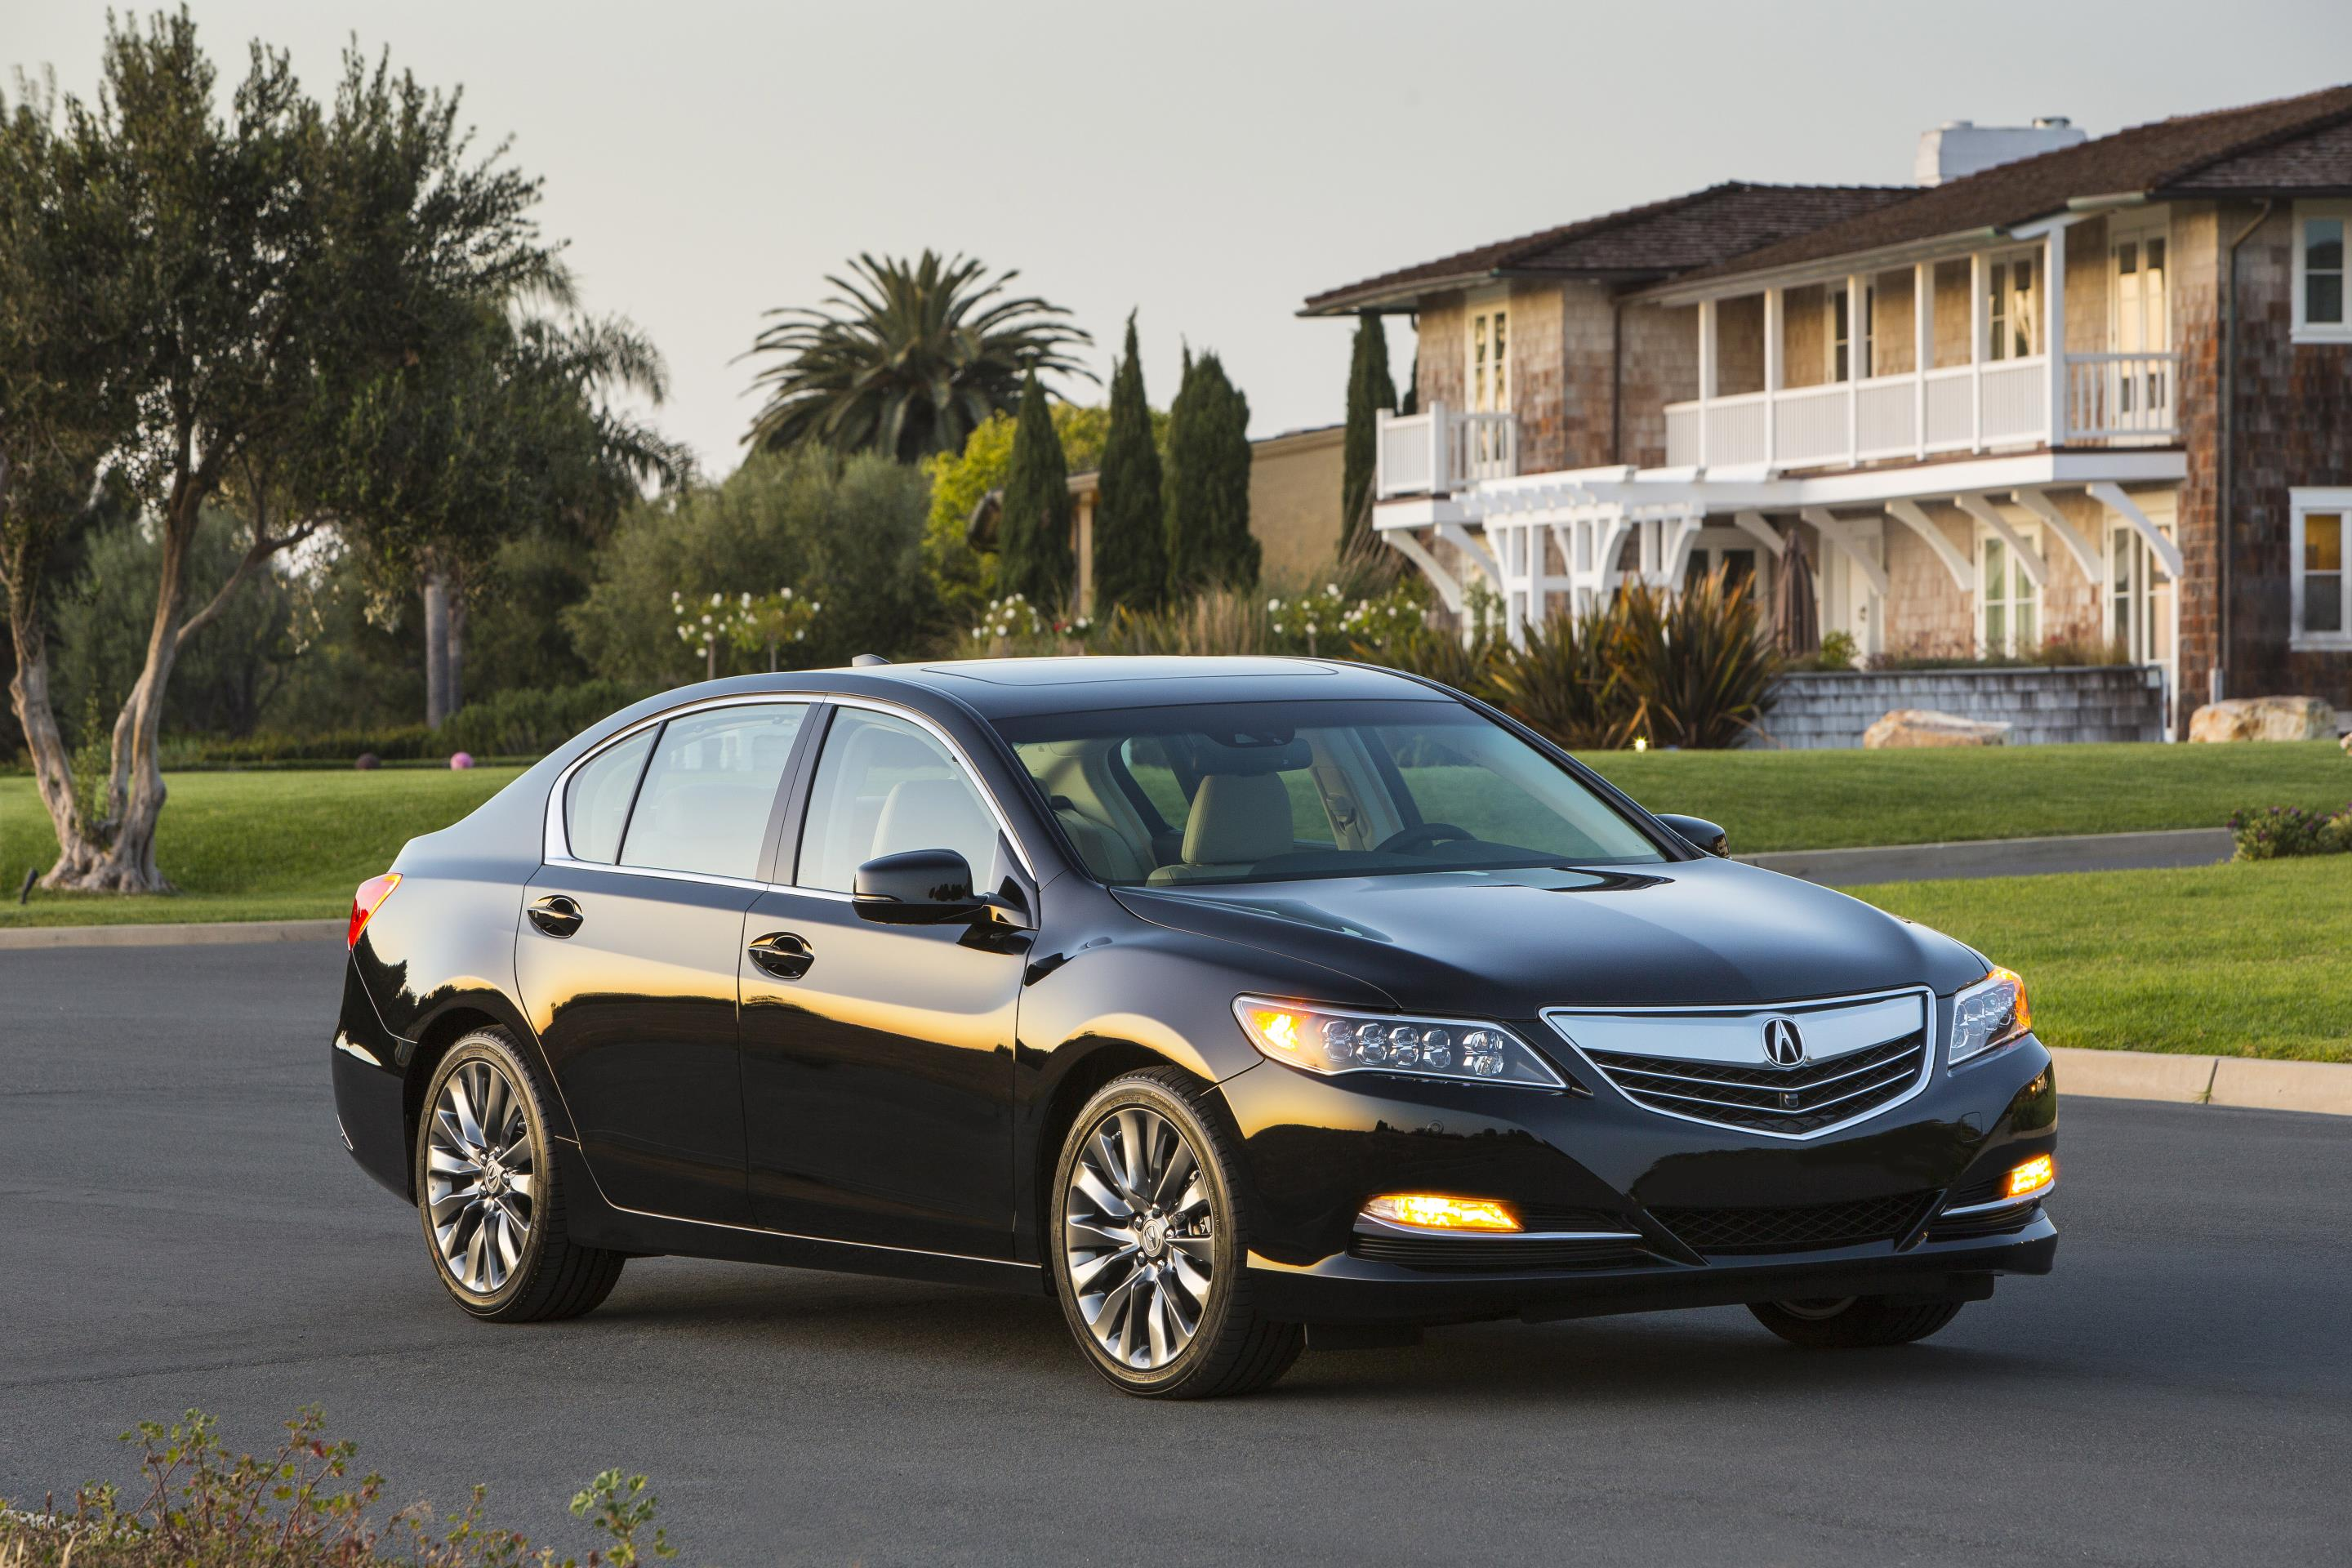 2017 acura rlx priced from  54 450  updated sport hybrid rlx due this fall